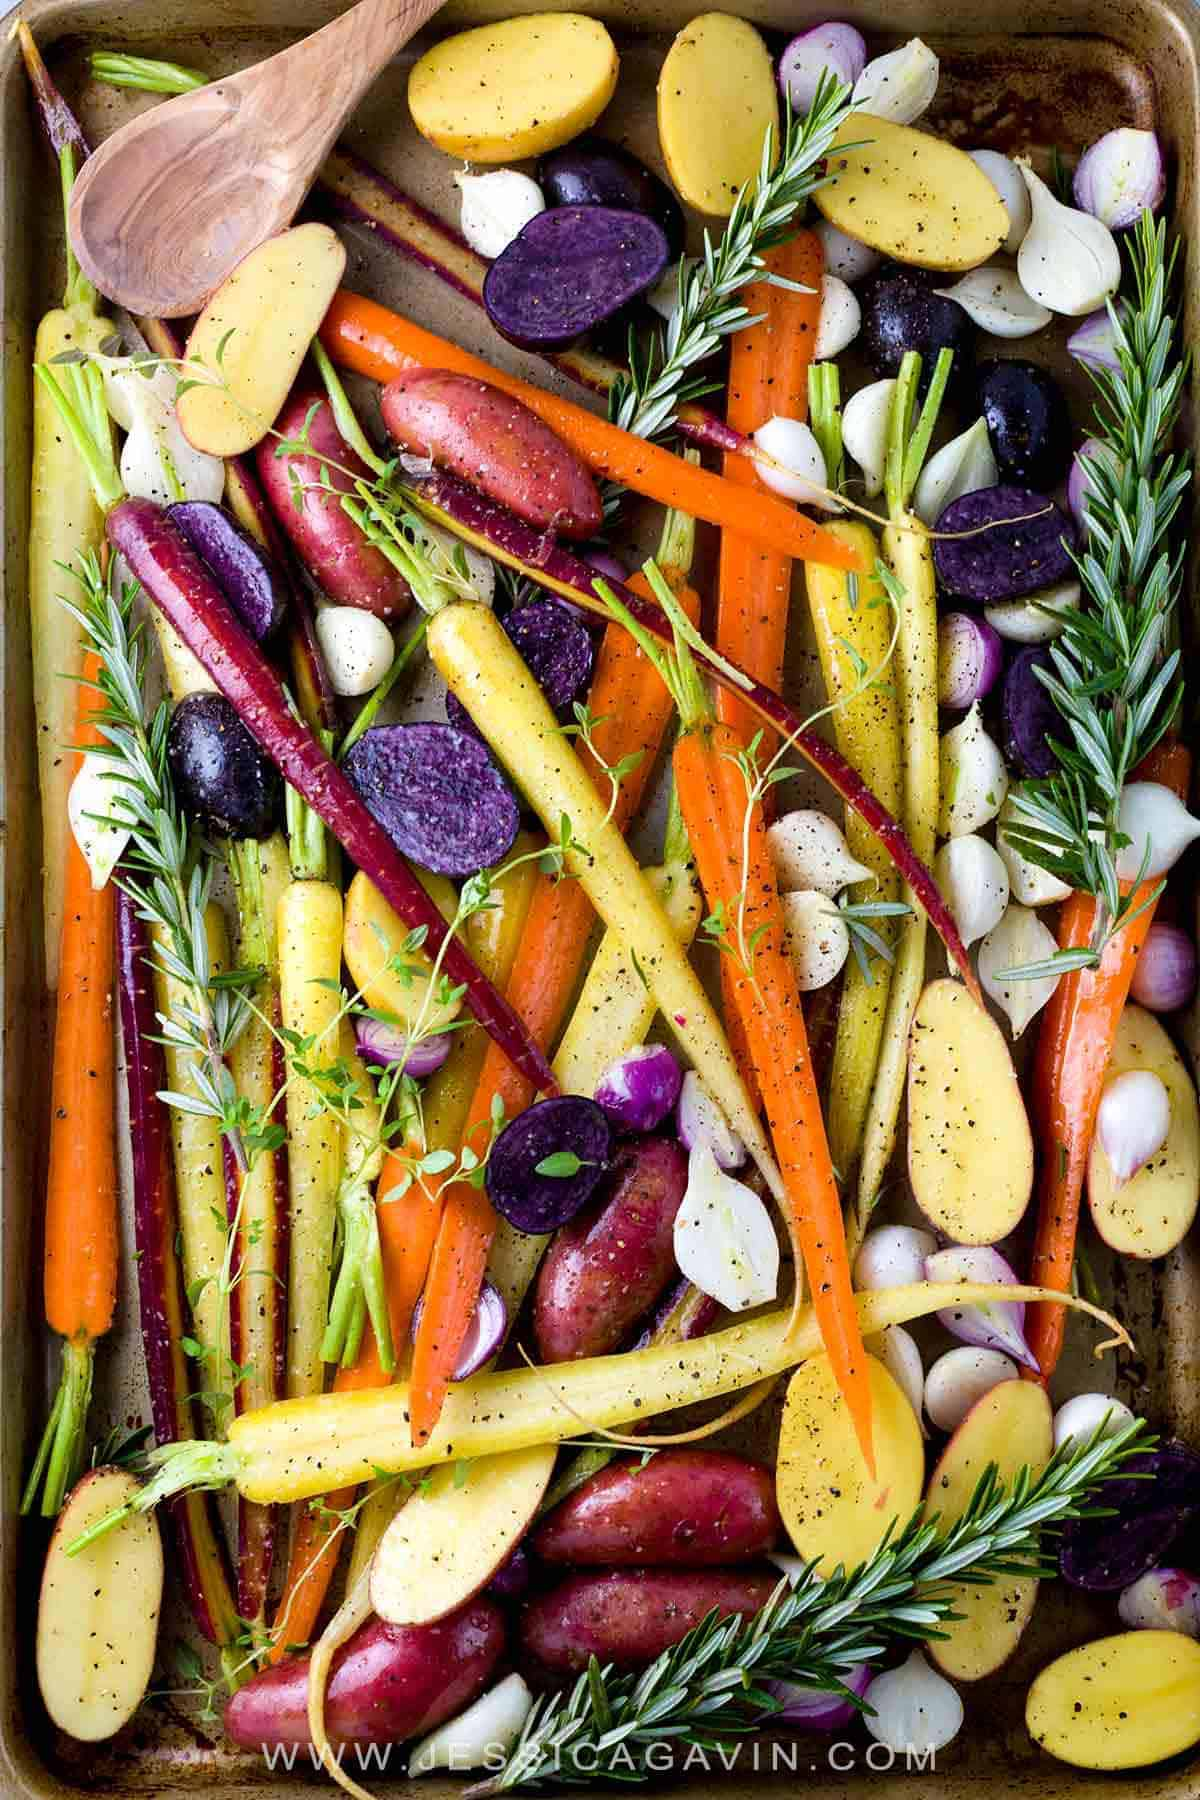 Oven Roasted Root Vegetables Recipe - A colorful assortment of seasonal ingredients like potatoes, carrots, and onions. A healthy recipe served with a creamy homemade yogurt ranch sauce! #rootvegetables #roastedvegetables #veggies #vegetablerecipe #vegetarian